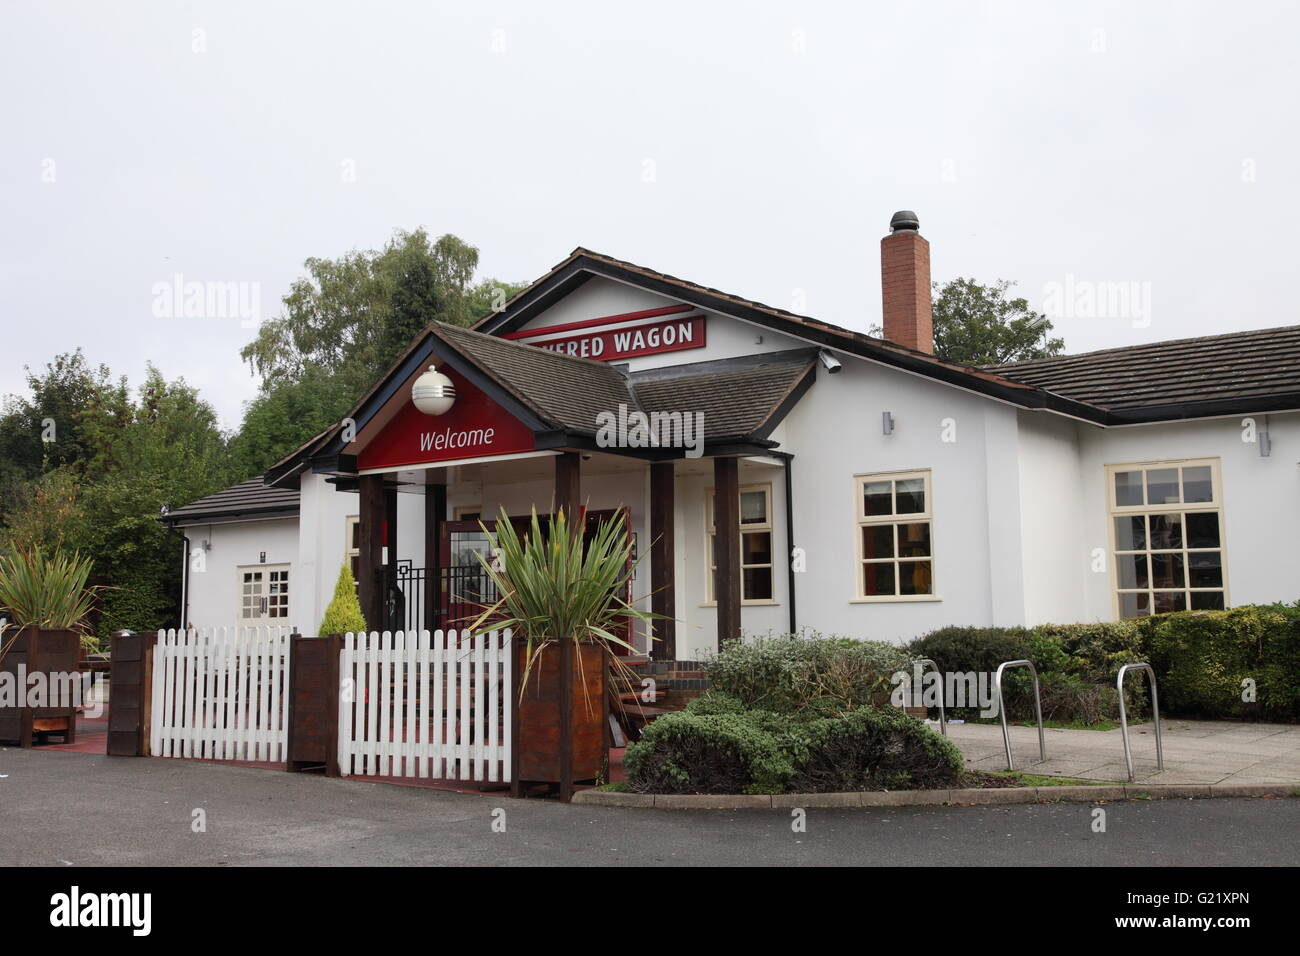 The Covered Wagon pub in Moseley, Birmingham Stock Photo